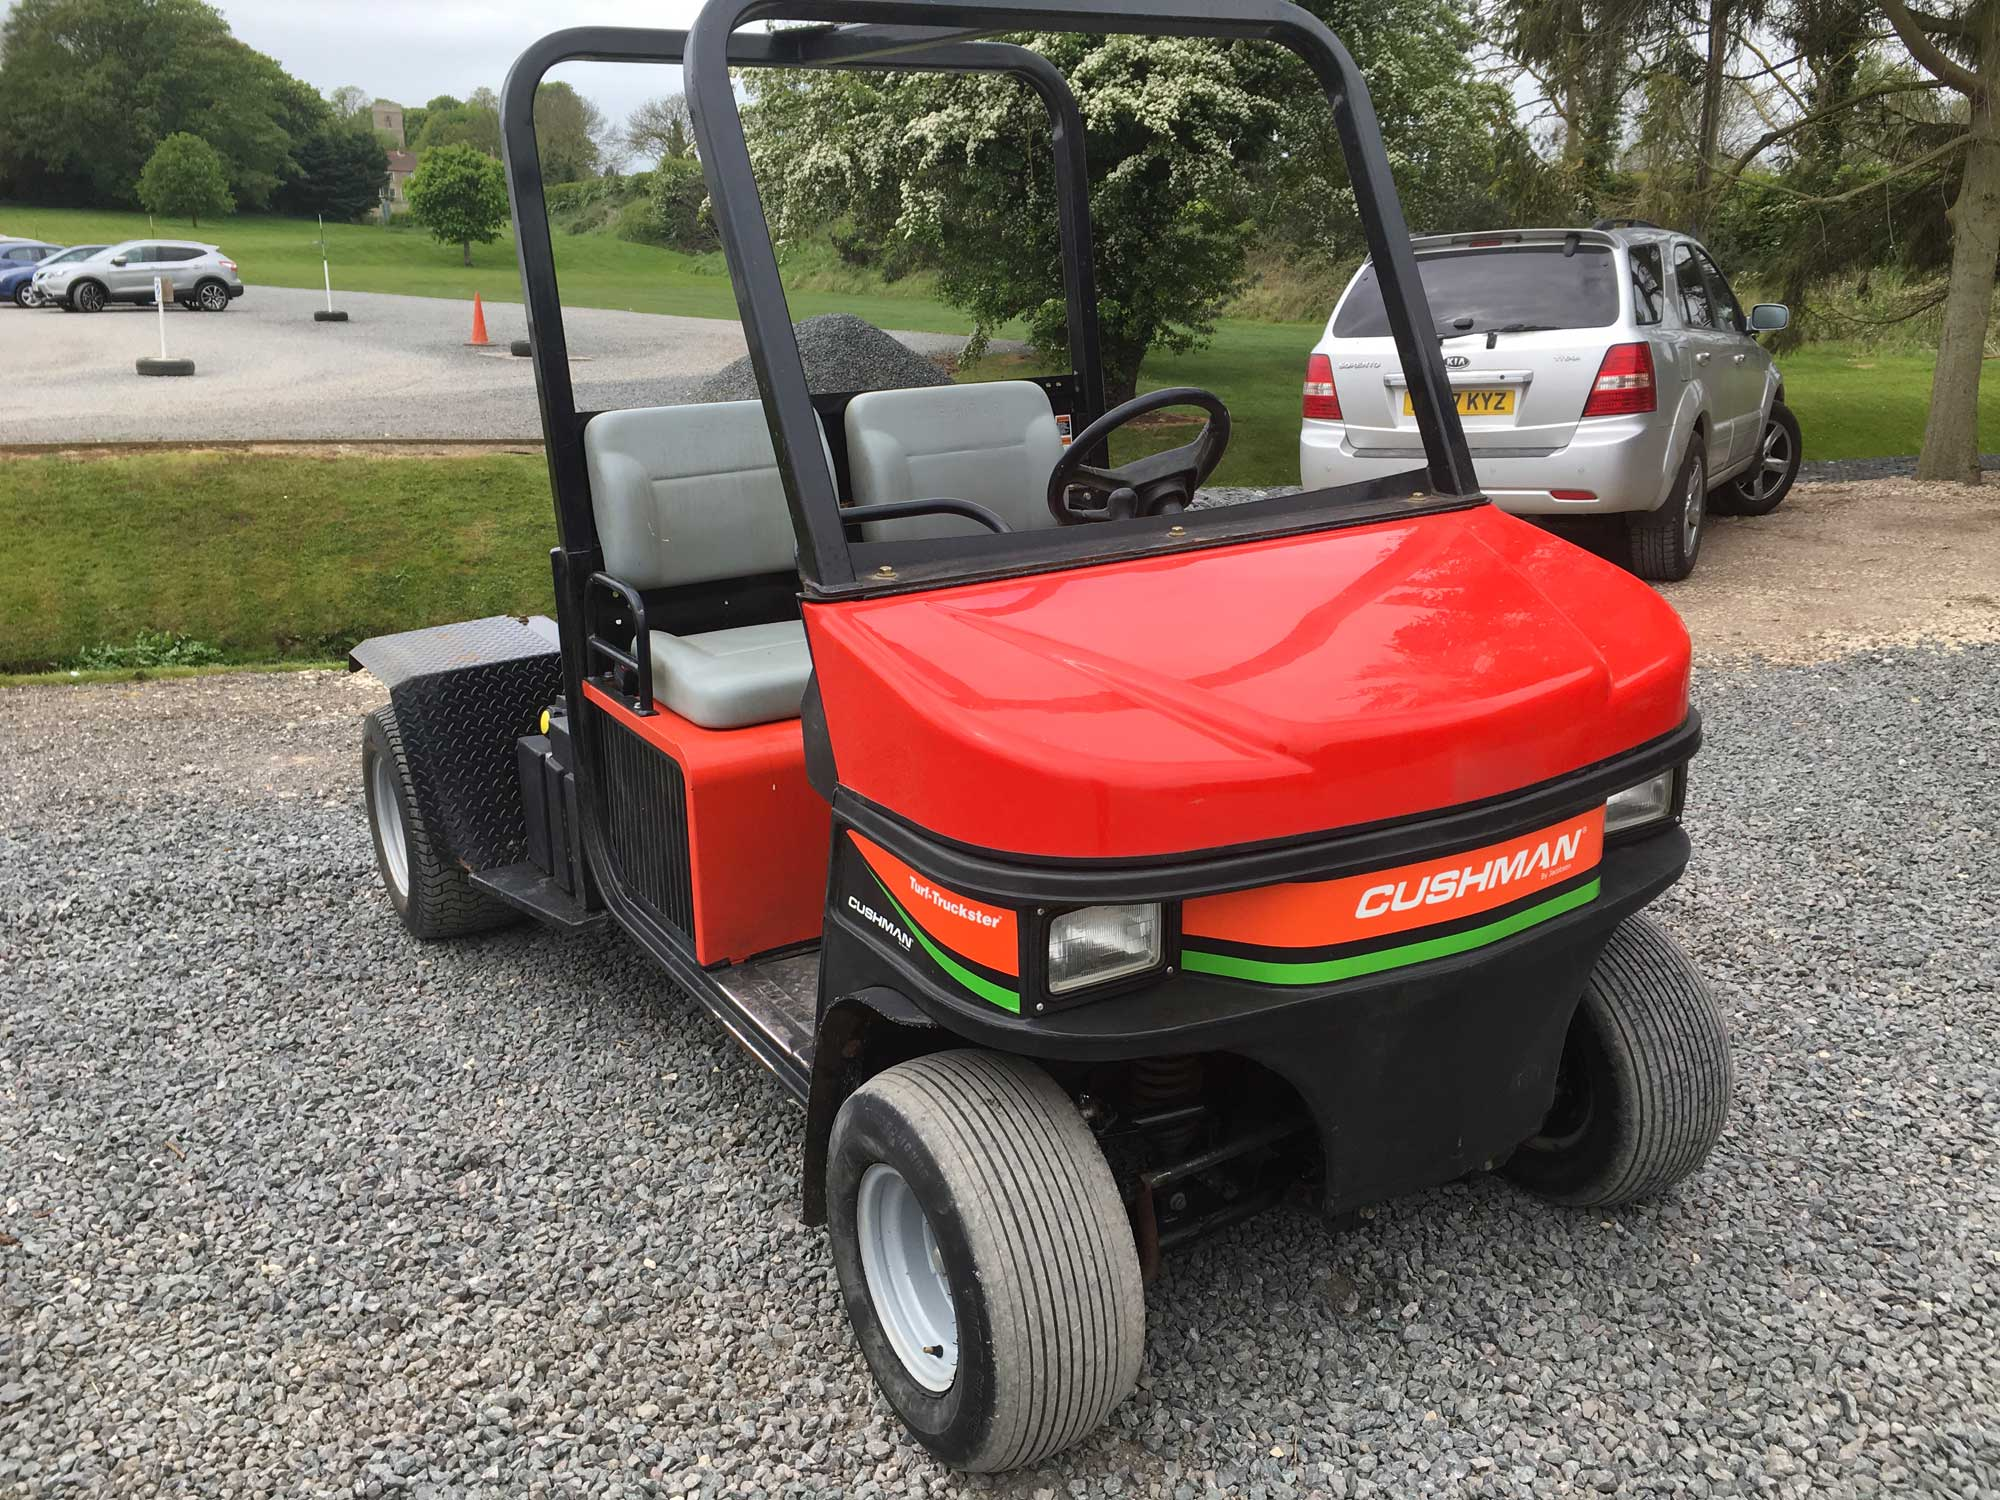 Wiring Diagram Cushman 1600 Wire Data Schema Titan Riding Mower Images Writing Sample And Guide 36v Golf Cart